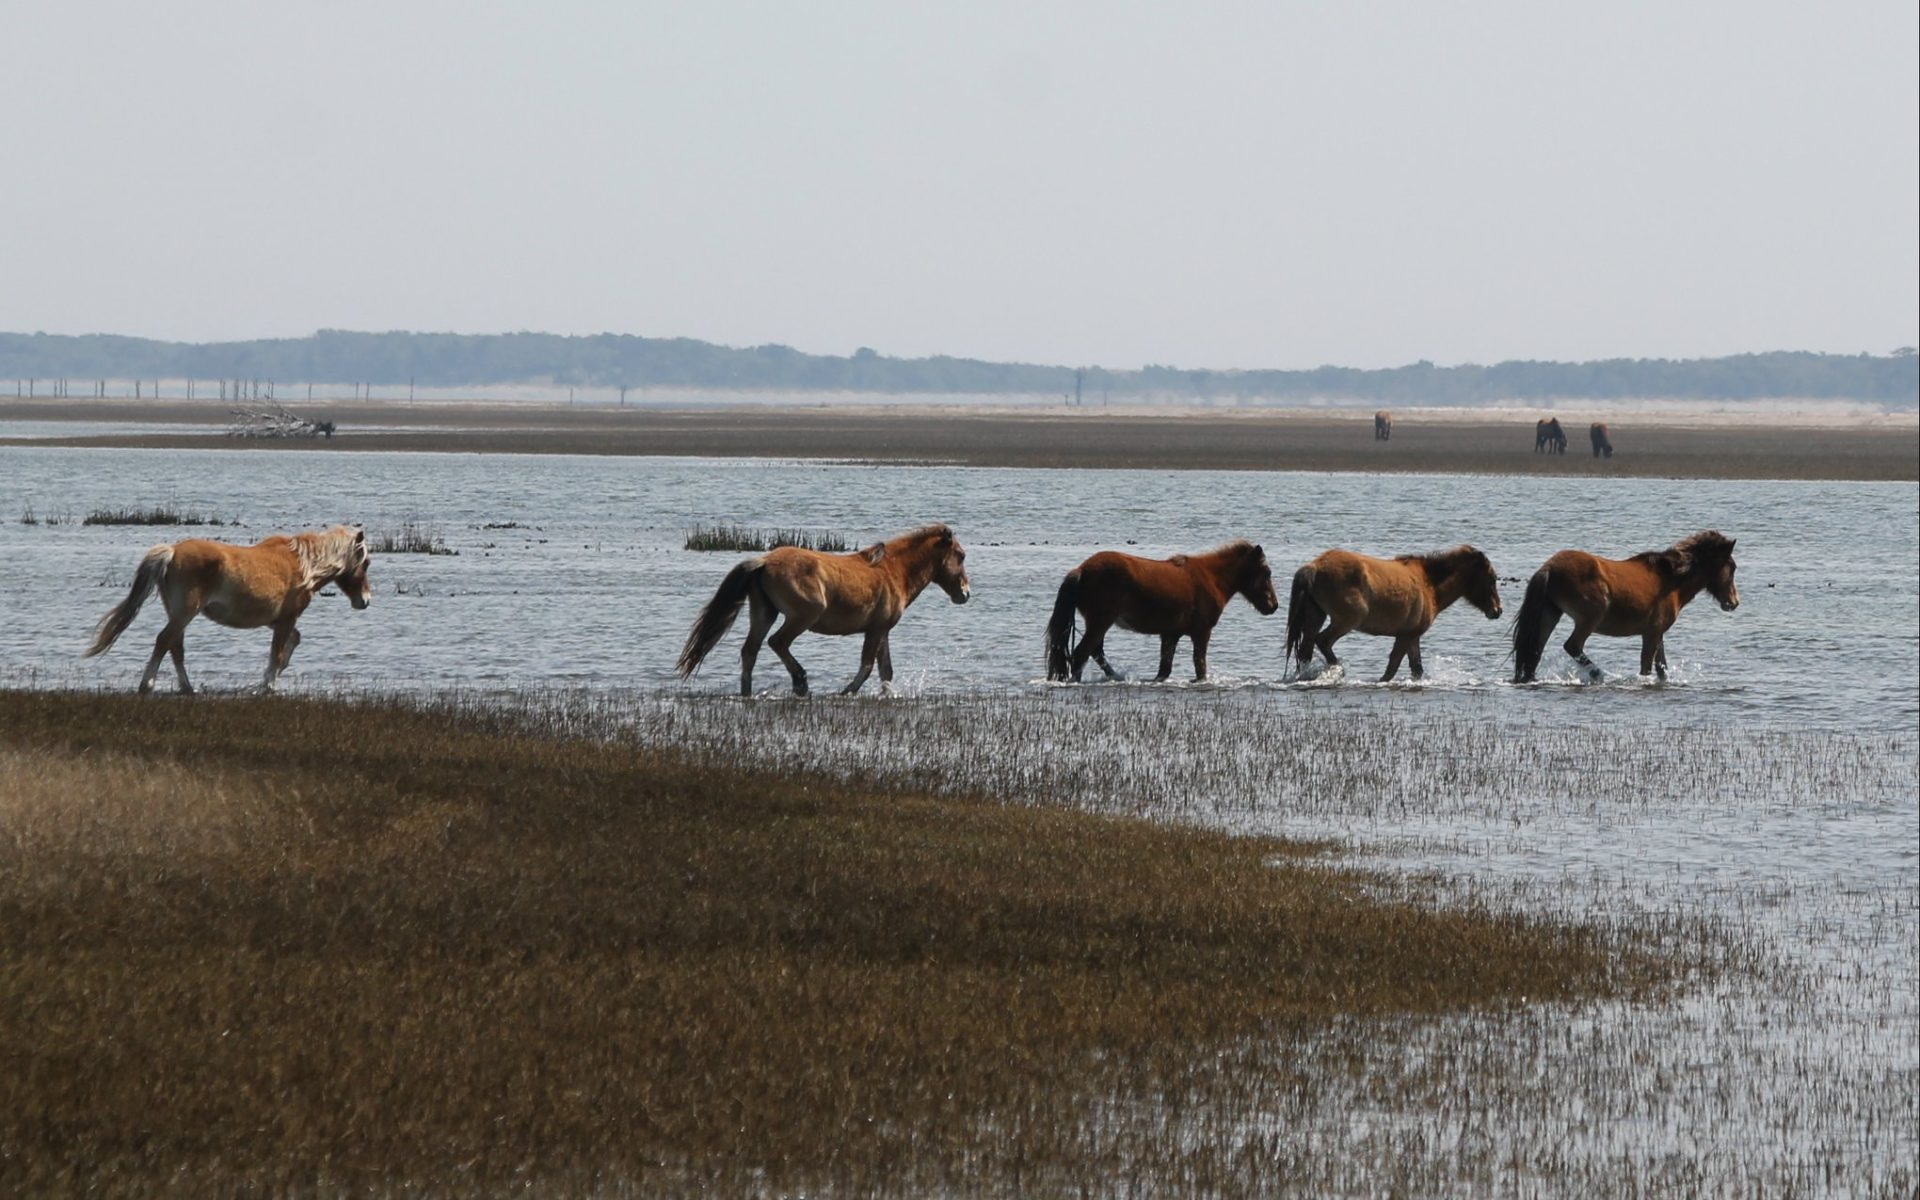 Wild horses in the Rachel Carson Reserve in Beaufort, North Carolina will fend for themselves during Hurricane Florence. Photo courtesy Paula Gillikin